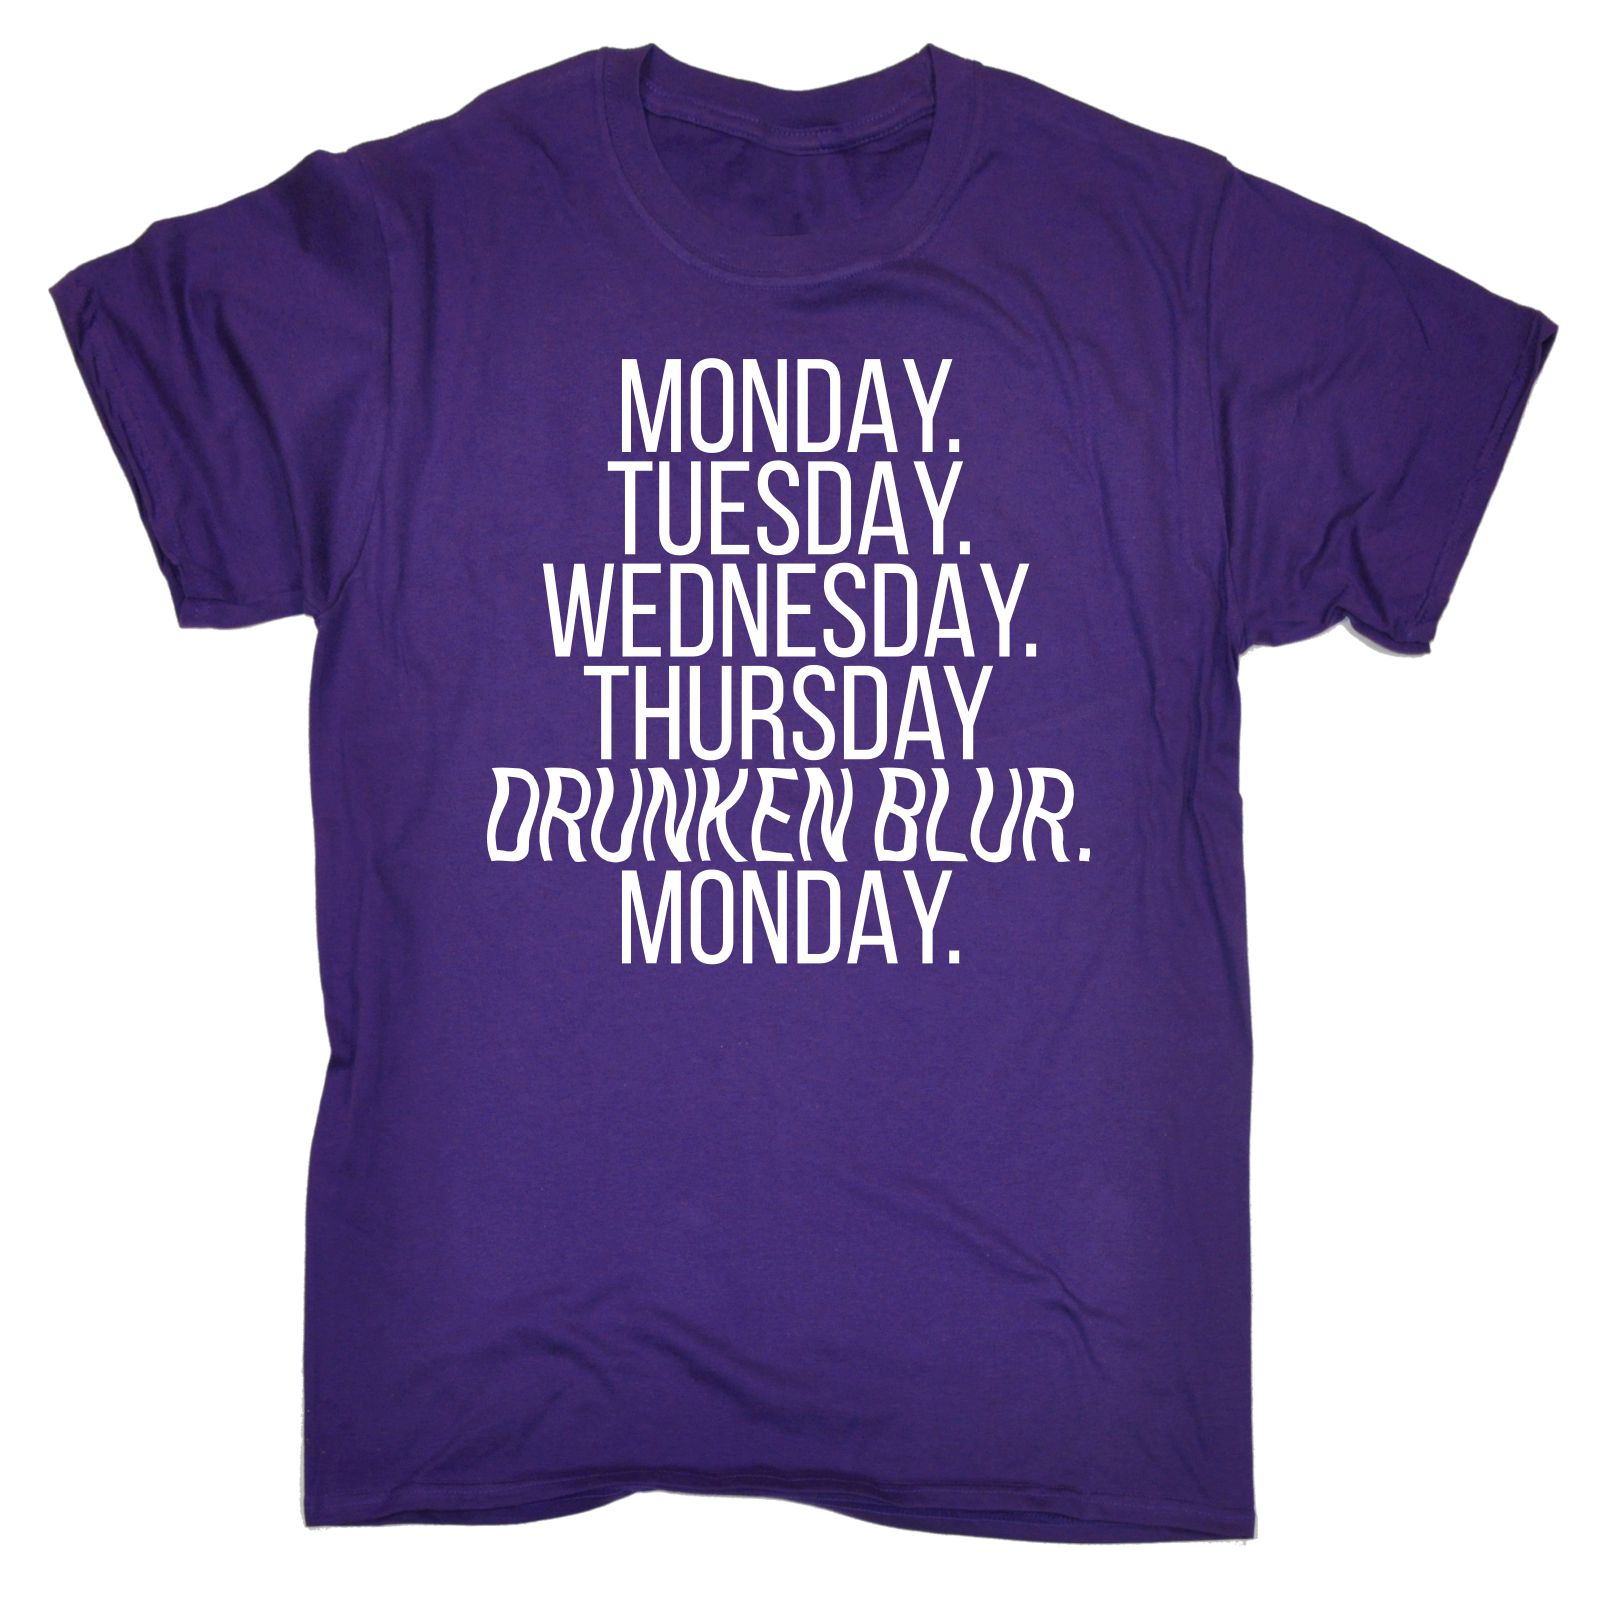 Monday Tuesday Wednesday Thursday Drunken MENS T-SHIRT Tee Funny Birthday Gift Adults Casual Tee Shirt Short Sleeve T Shirt Tops